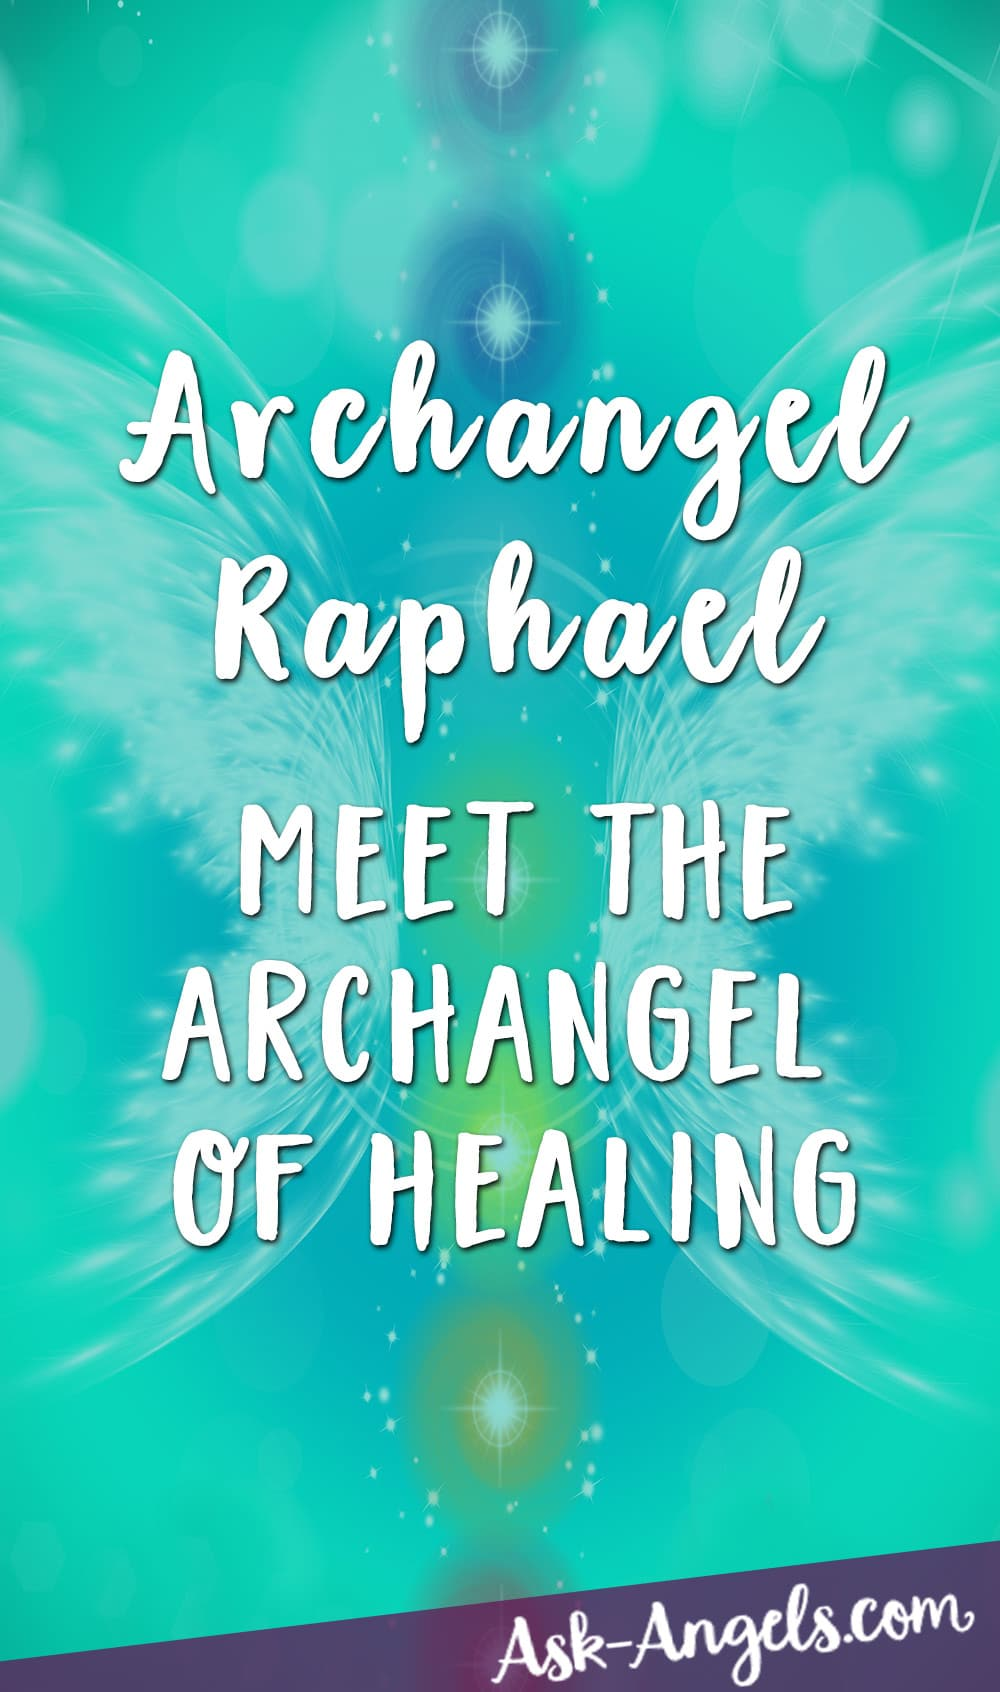 Angel From Holly's World archangel raphael – angel of powerful healing